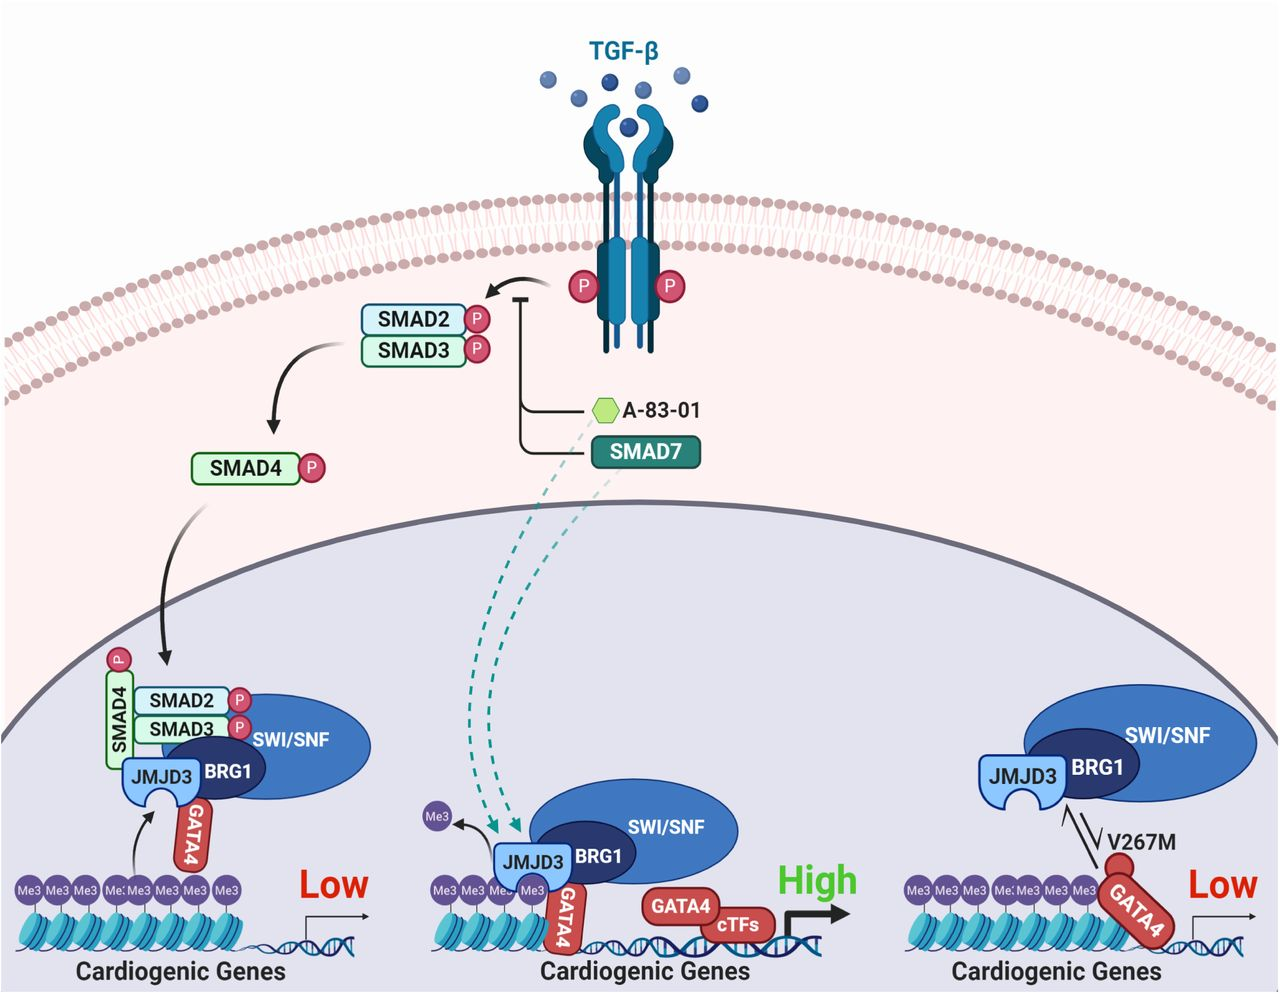 Recruitment mechanisms of epigenetic modifiers to cardiogenic genes by GATA4. Schematic summary of the regulation of interactions between GATA4 and epigenetic modifiers. Canonical TGF-β pathway activation or the congenital heart disease-associated mutation in GATA4 (V267M) impede the recruitment of epigenetic modifiers JMJD3 and BRG1 to cardiogenic genes by GATA4, resulting in impaired H3K27me3 demethylation and gene expression in cardiomyogenesis. TGF-β blockade prevents nuclear translocation of the SMAD2/3/4 complex, promoting the recruitment of epigenetic modifiers to cardiogenic genes by GATA4 resulting in efficient removal of H3K27me3 and gene expression.